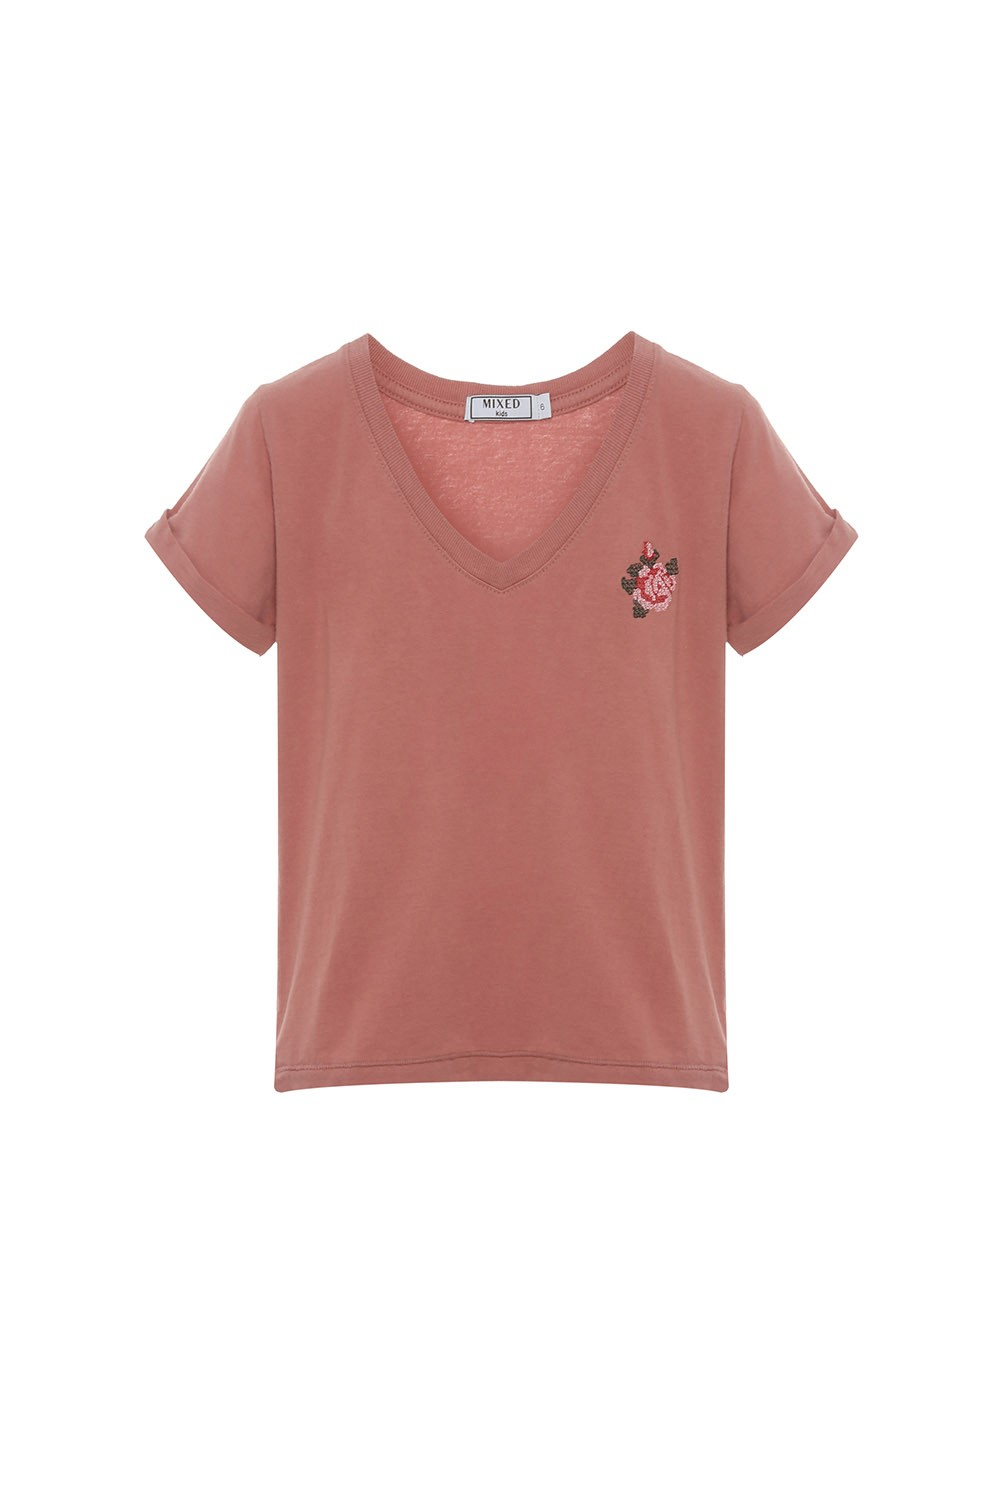 CAMISETA BLUSH BRONZE KIDS I21